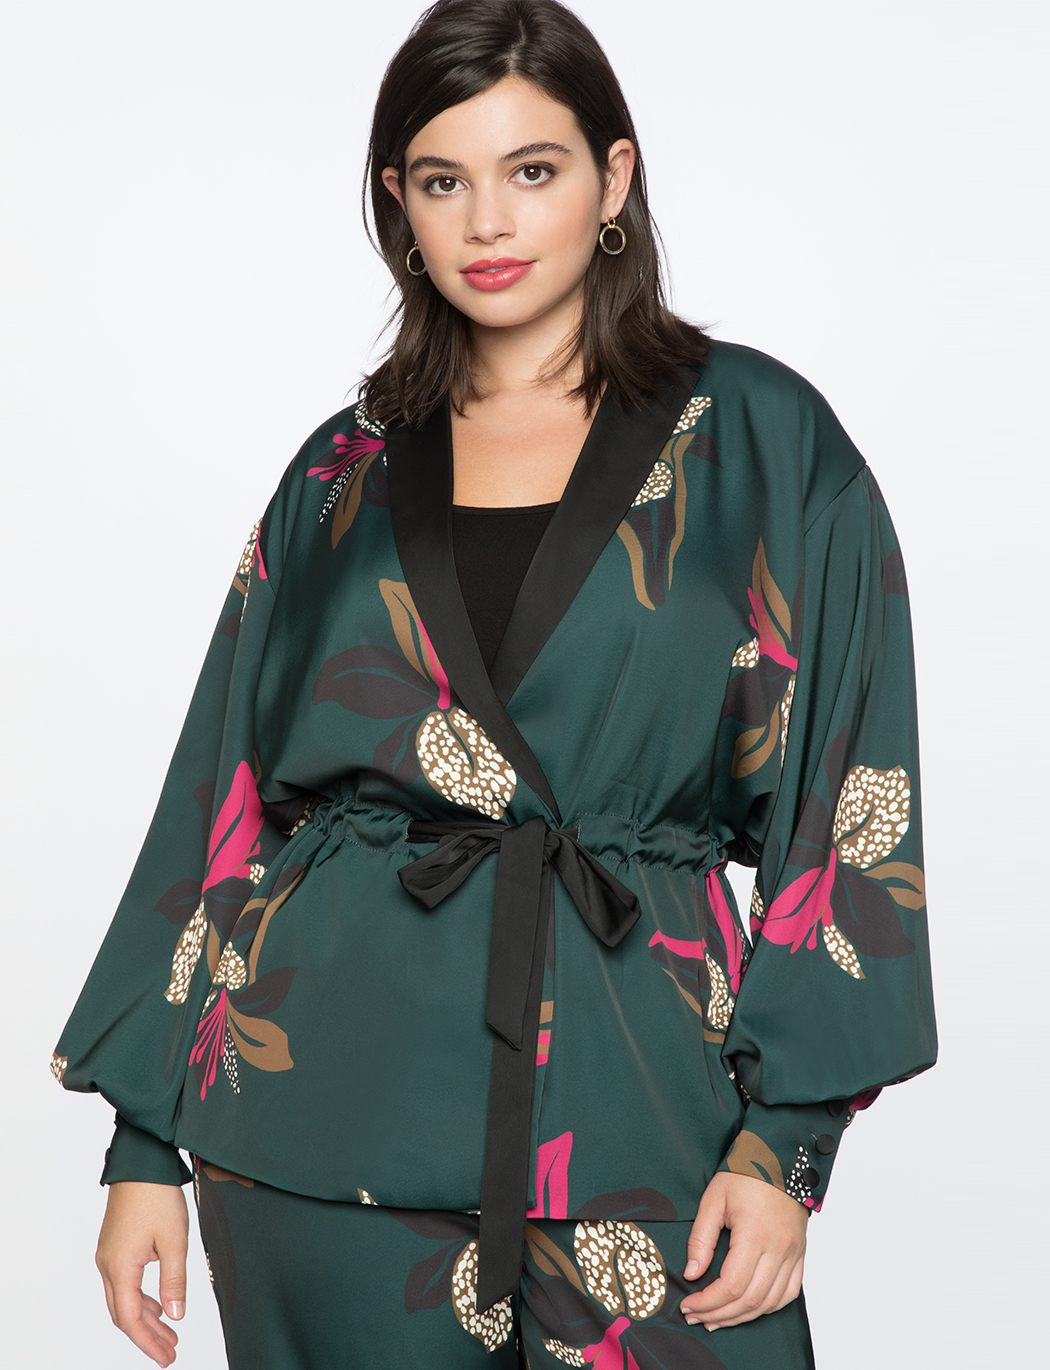 Puff Sleeve Jacket With Tie Women S Plus Size Coats